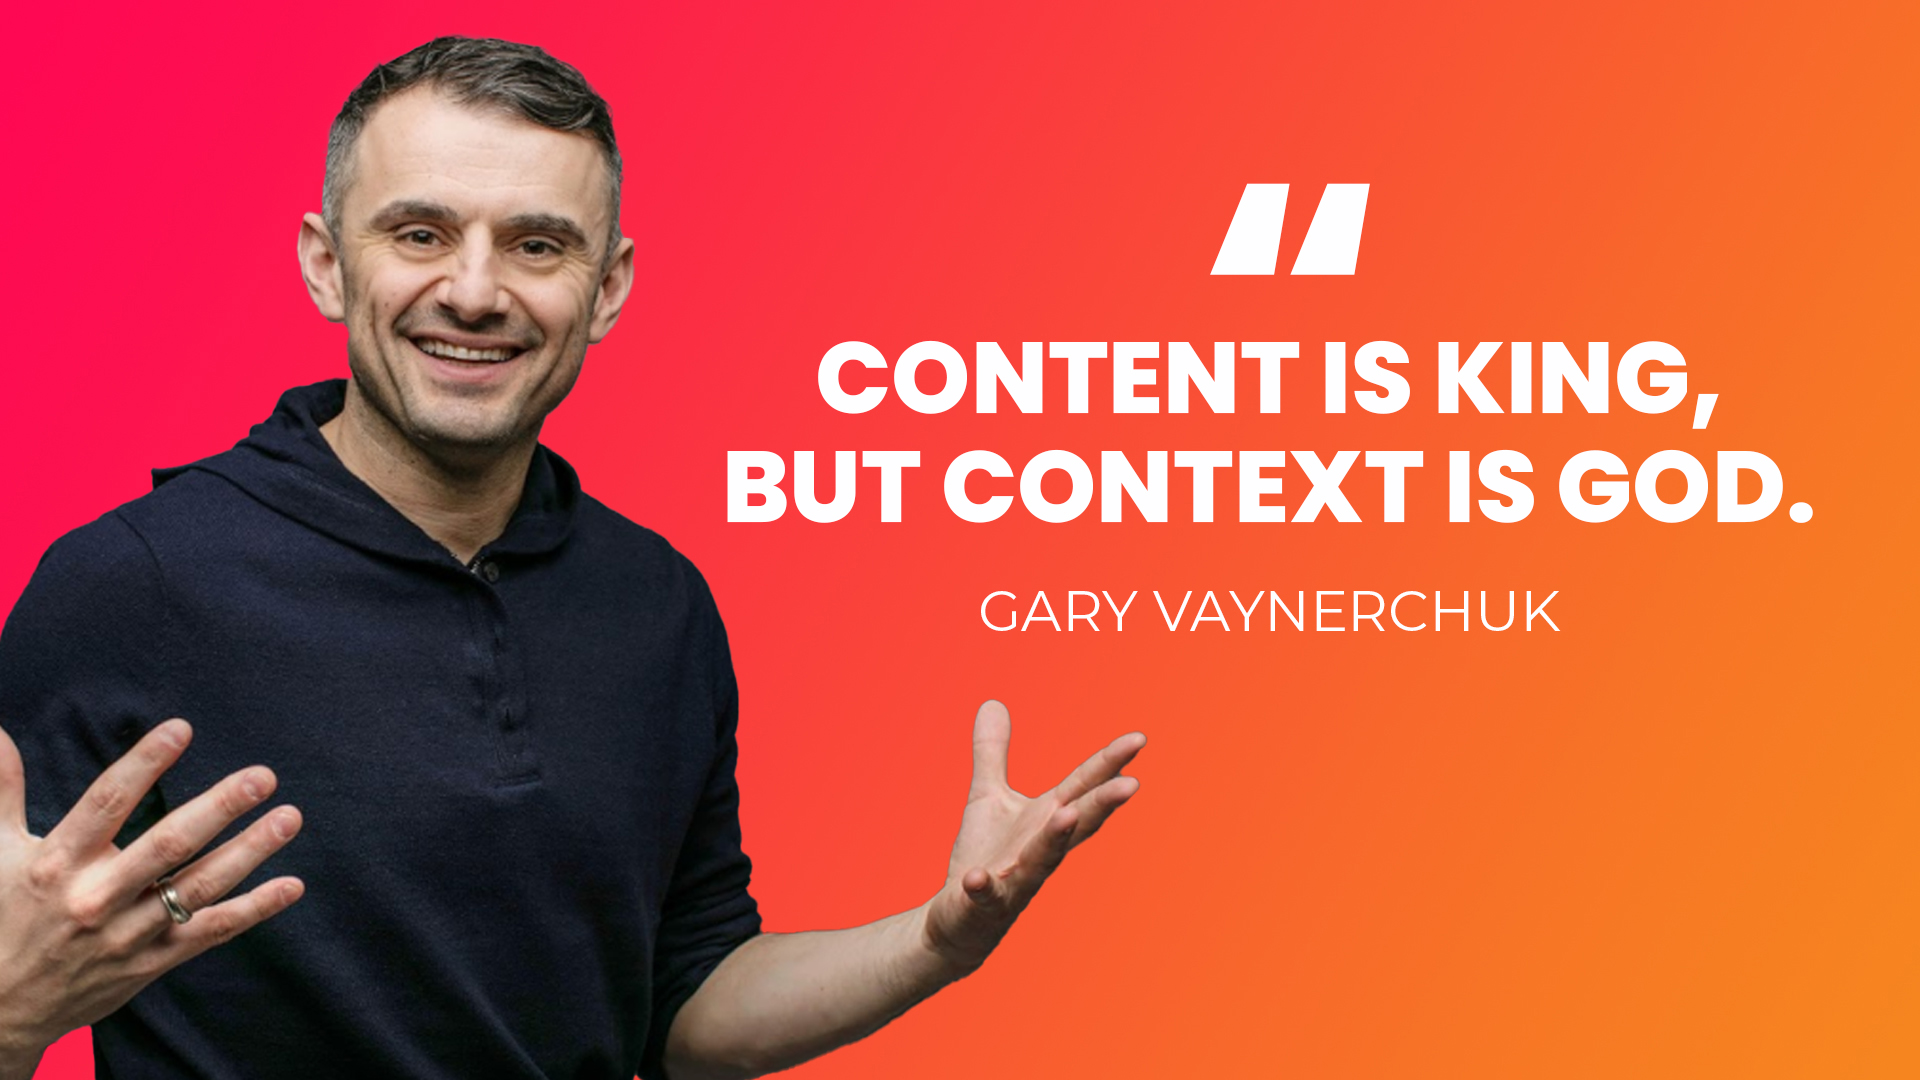 Content is king but context is God